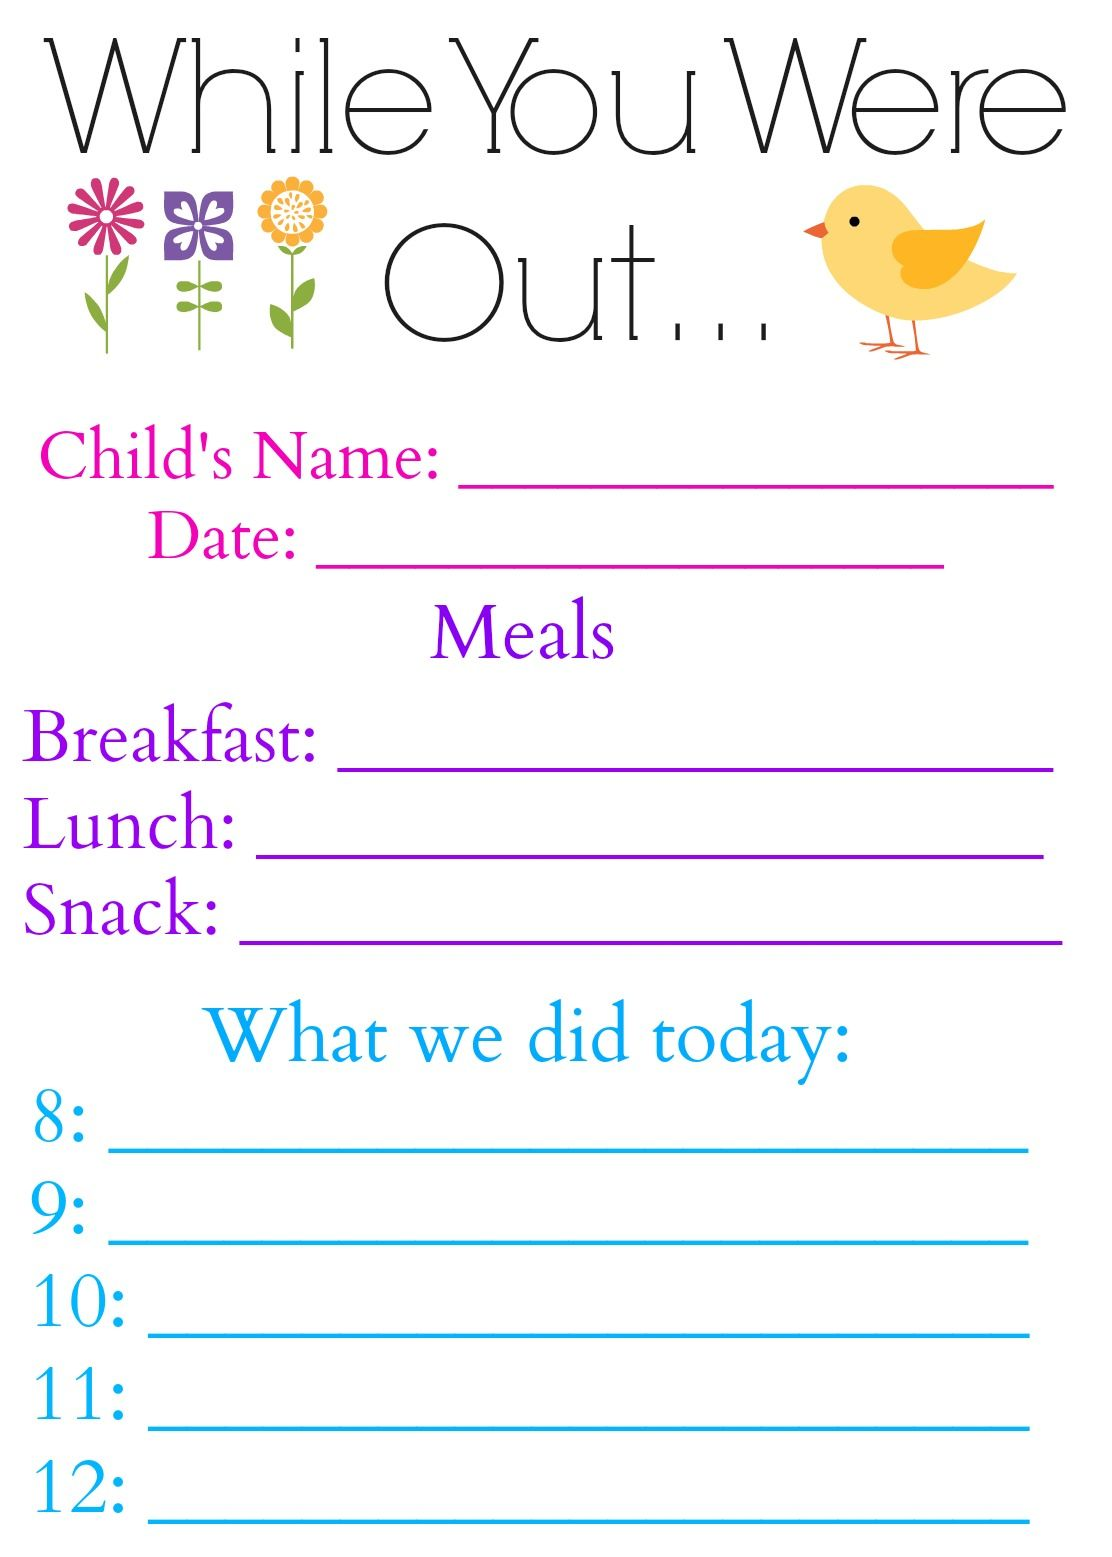 While you were out, daily log form for babysitter or nanny | Hey ...